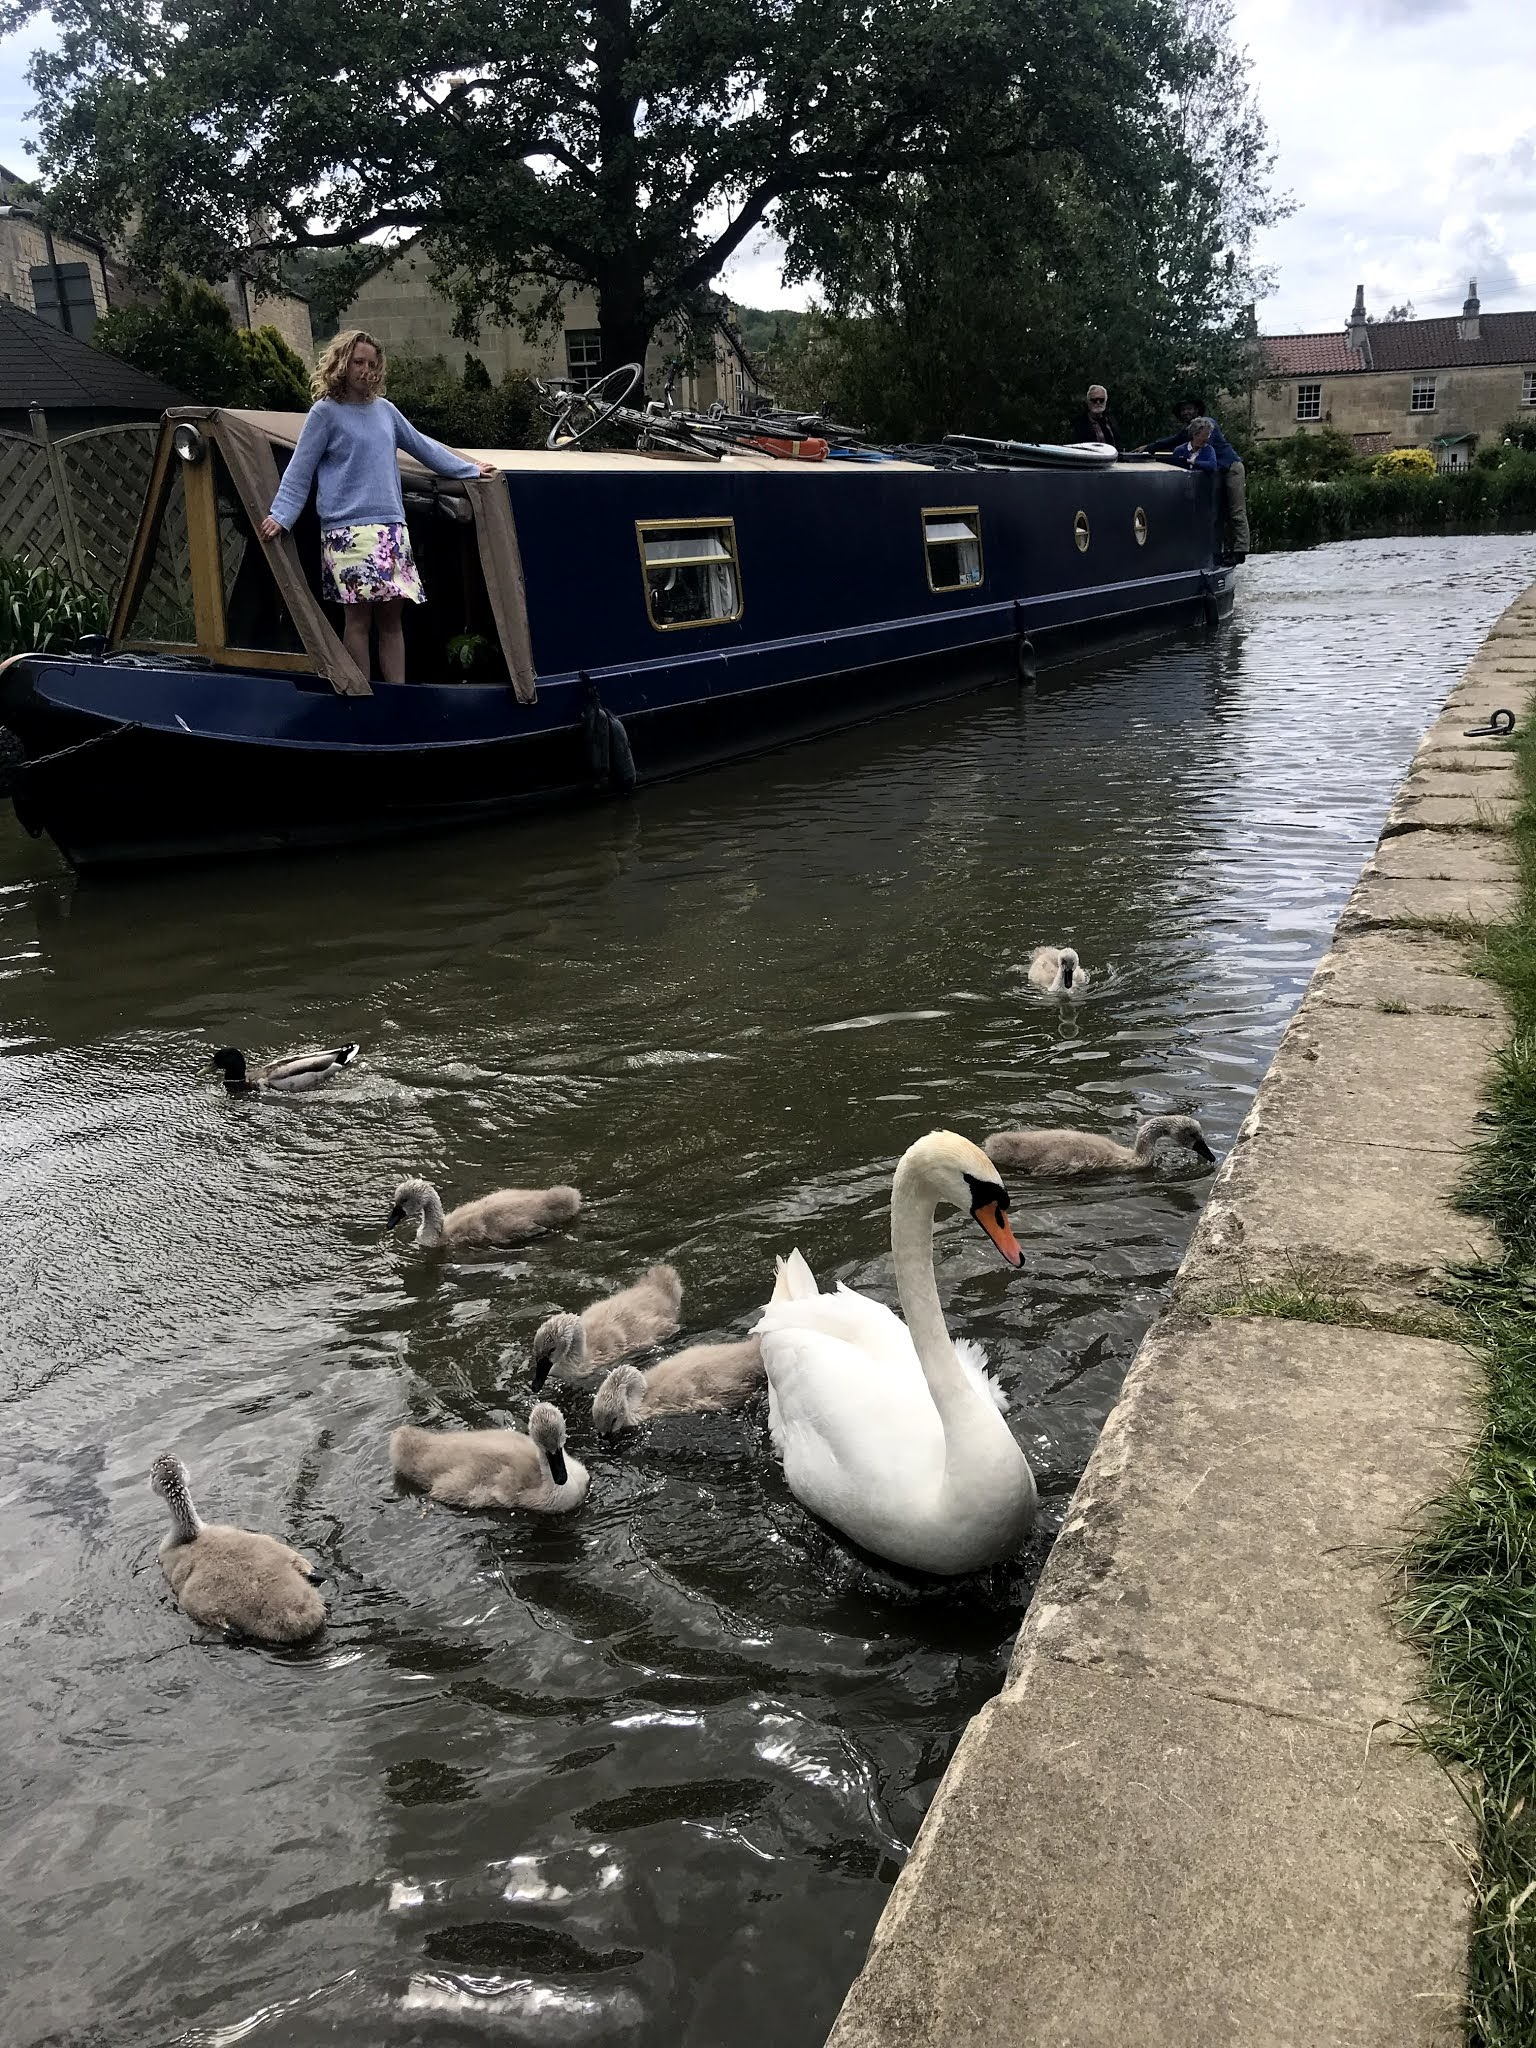 Swan on water with boat - Day trip to Bathampton